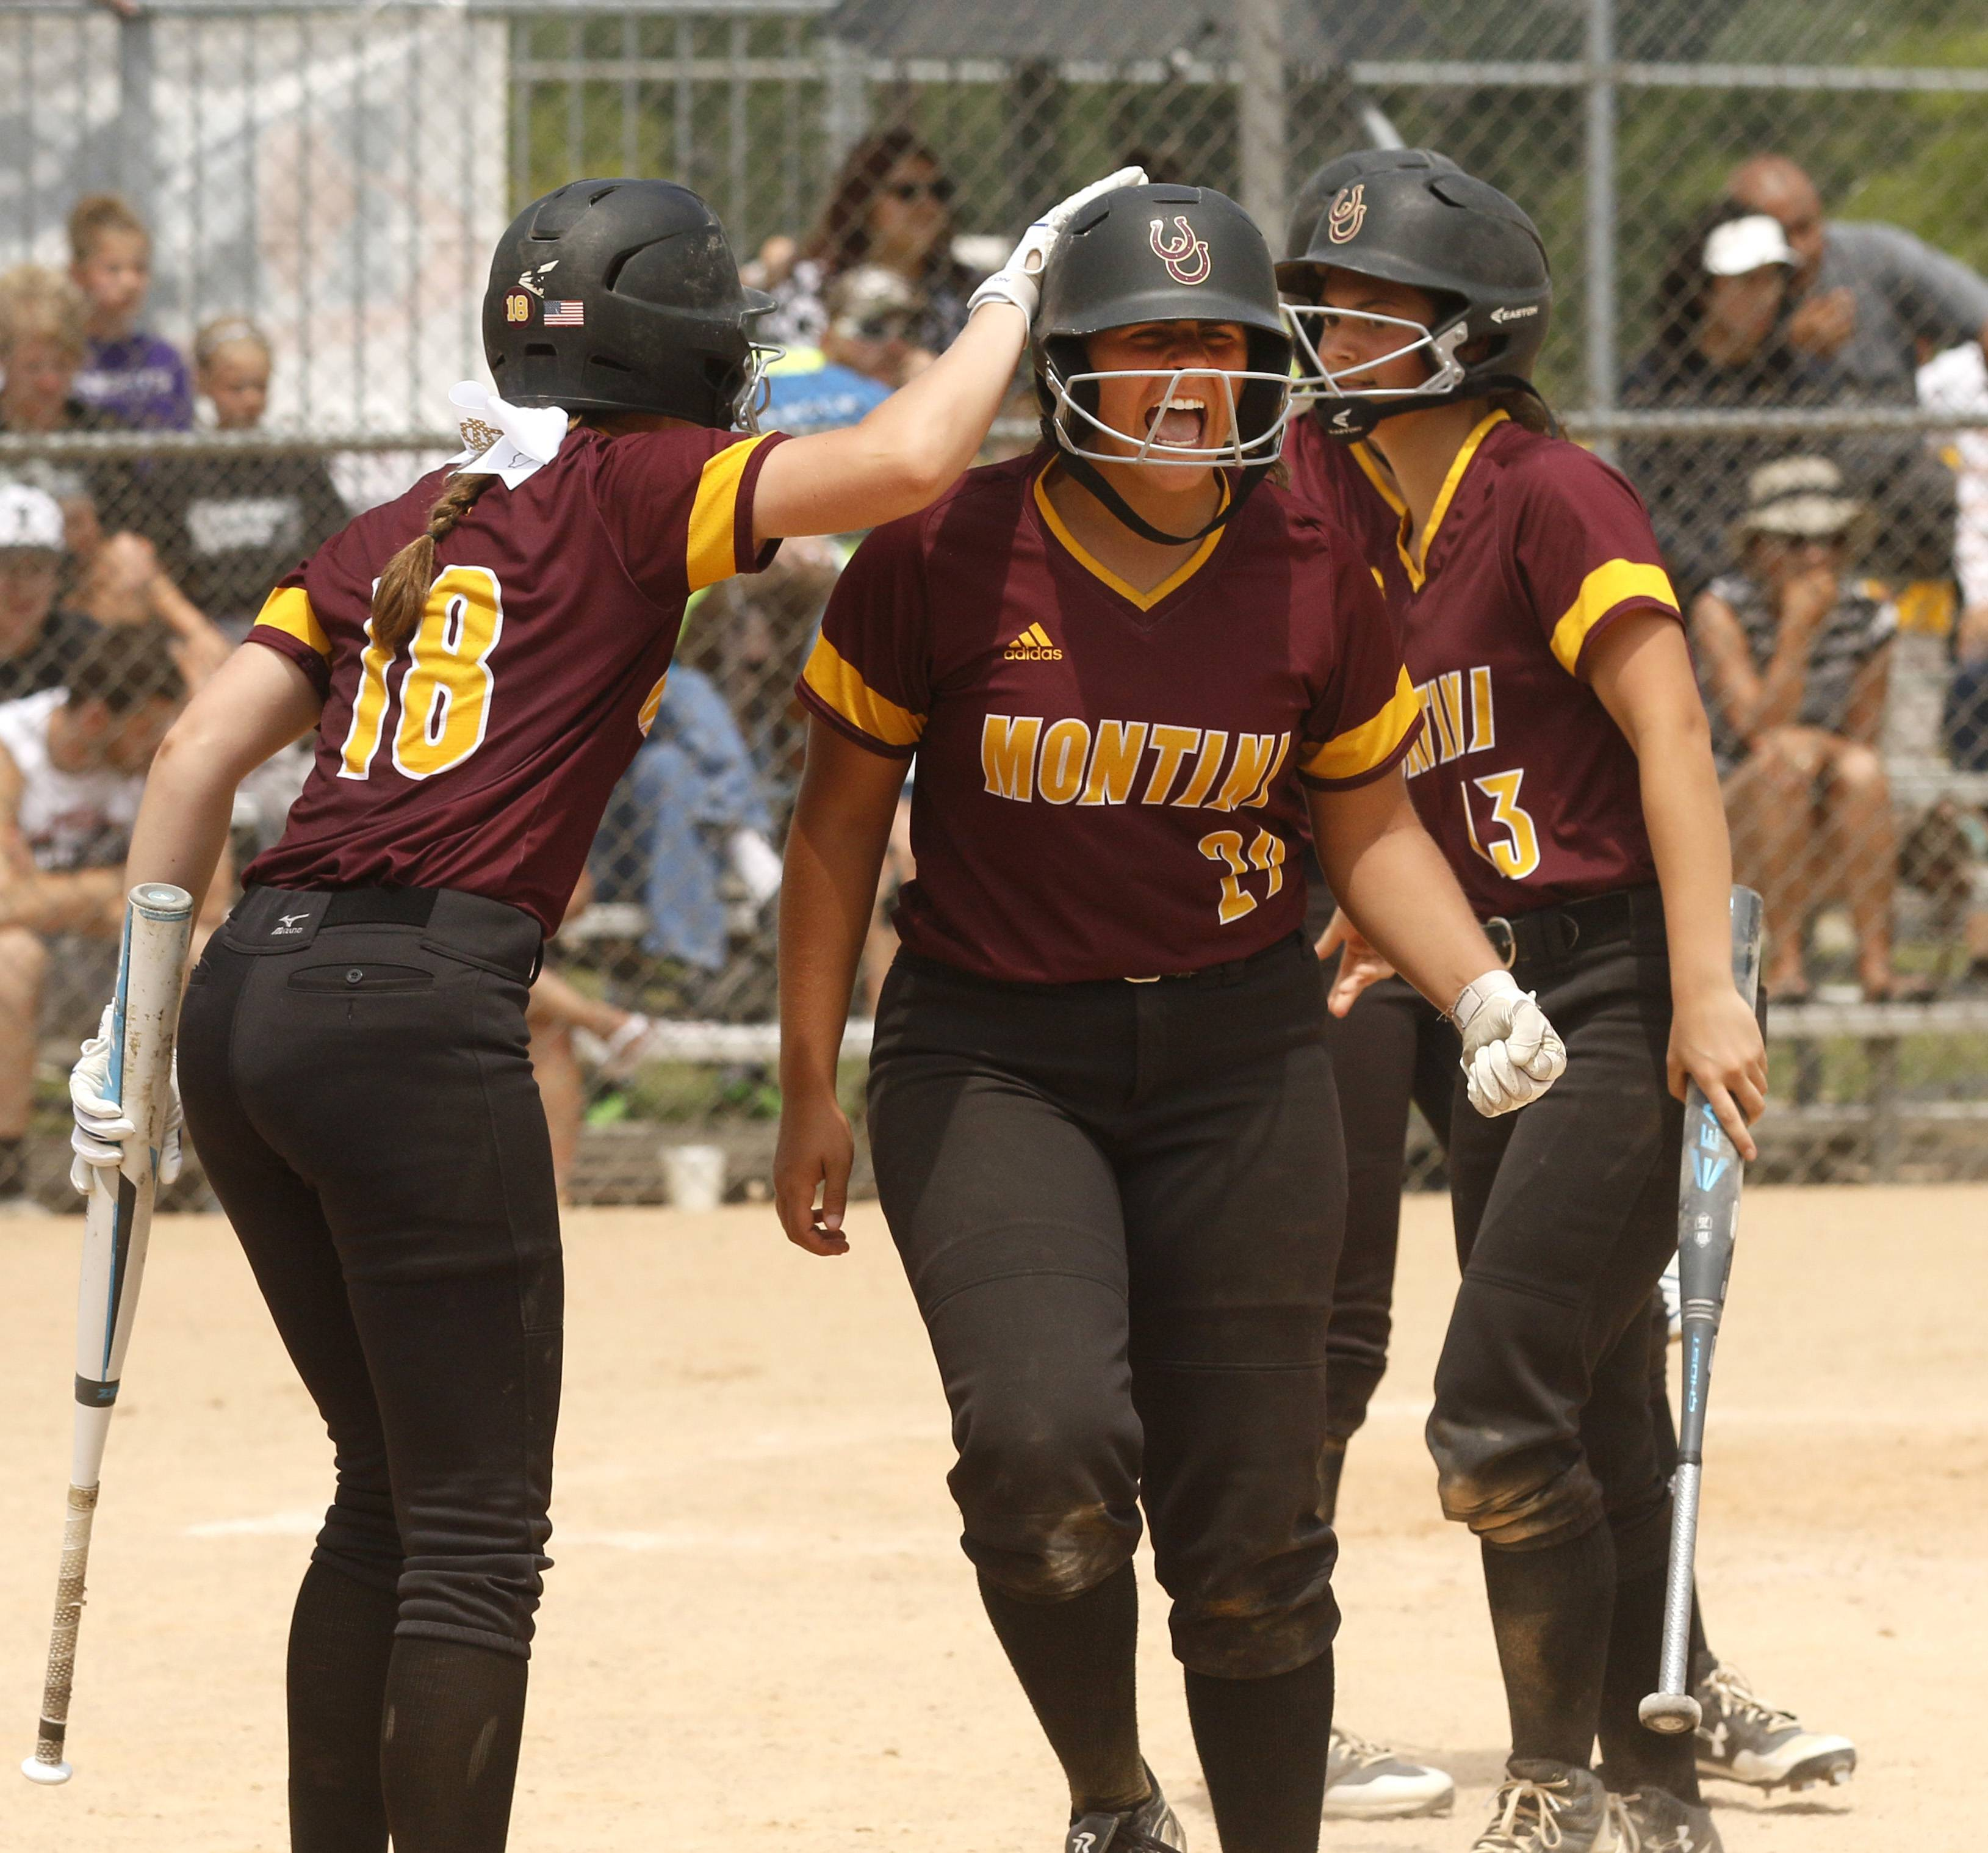 Montini Catholic's Else Spaccapaniccia (29) is greeted at home plate by Alyssa Filkowski (18) against Kaneland during the IHSA Class 3A state softball championship.